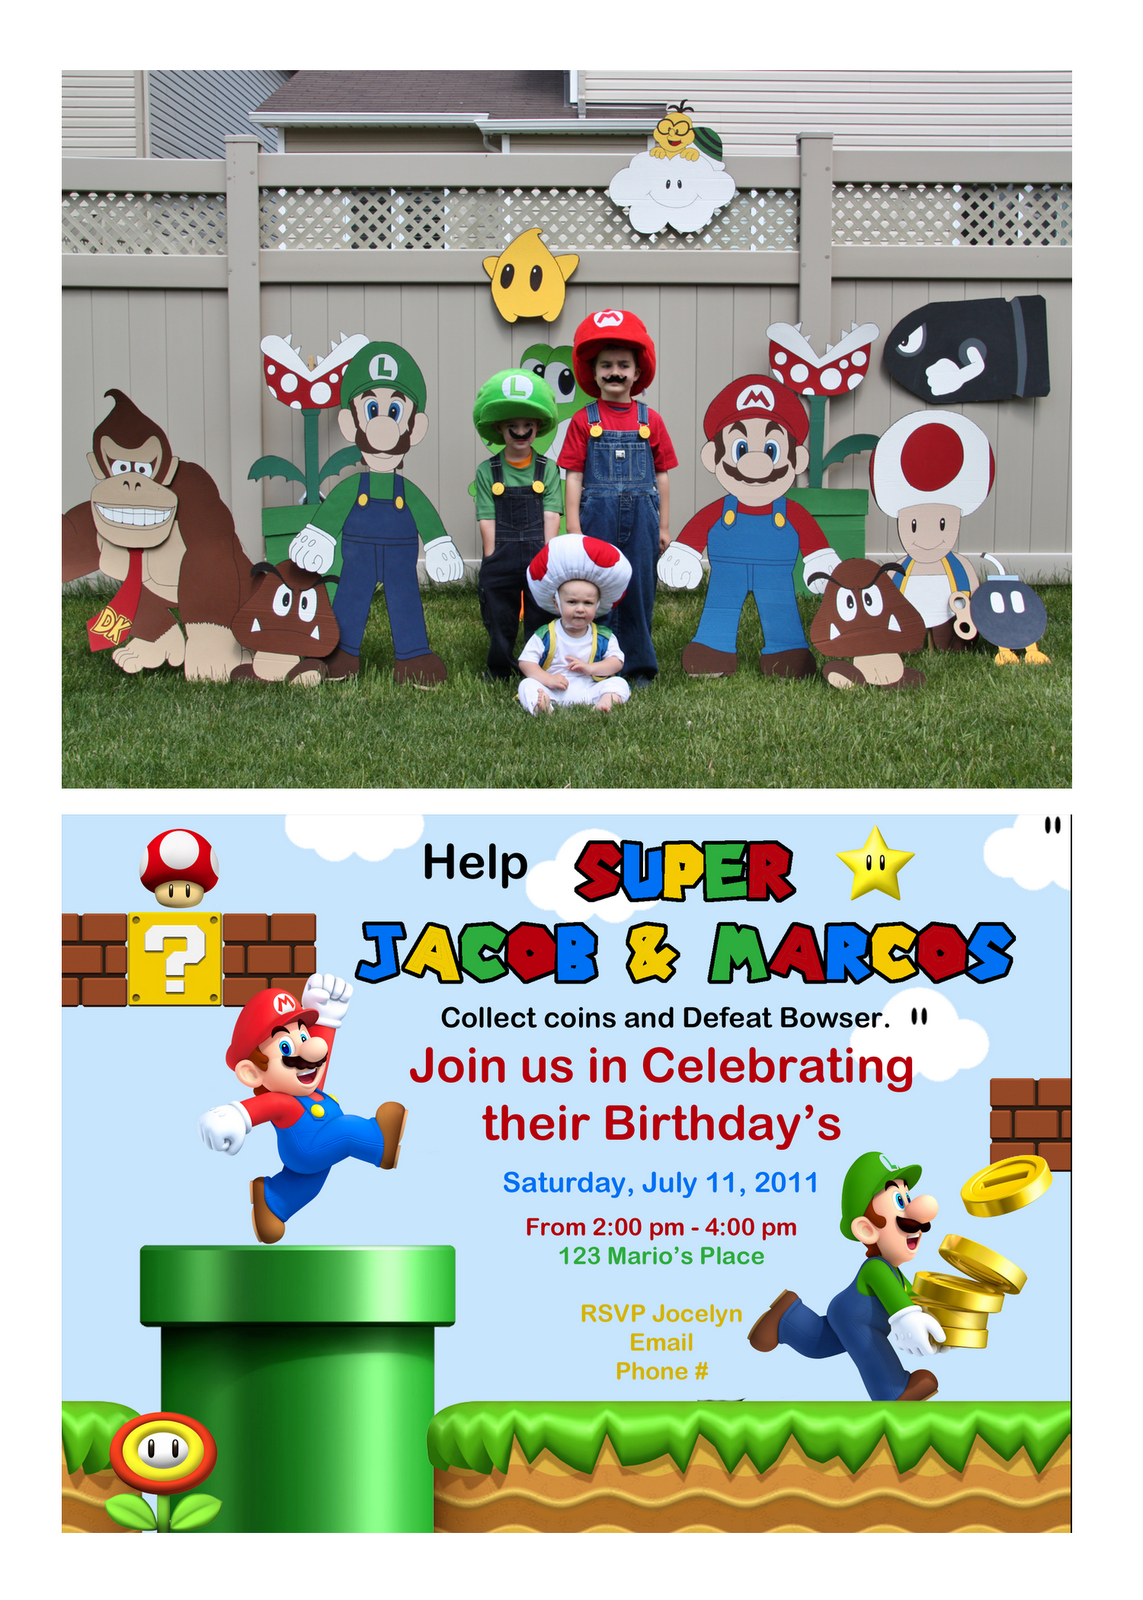 Super Mario Birthday Party Invitation Other party themes